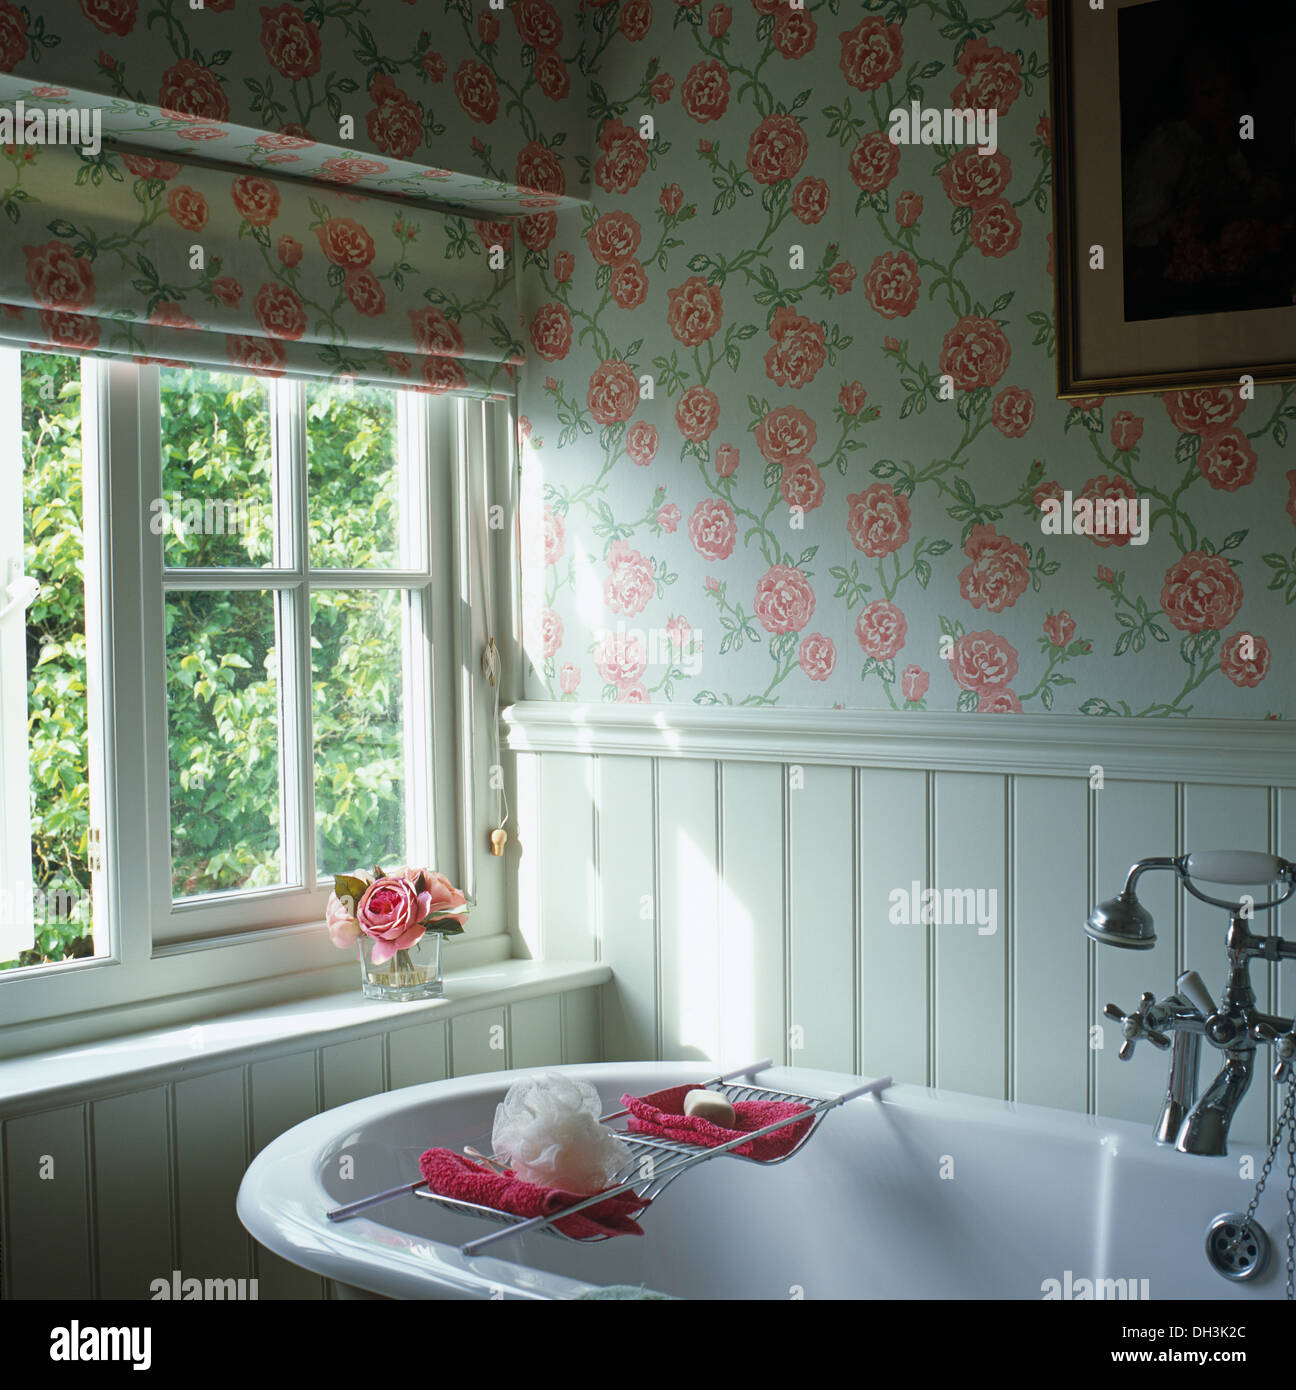 . Rose patterned Roman blind and wallpaper in cottage bathroom with